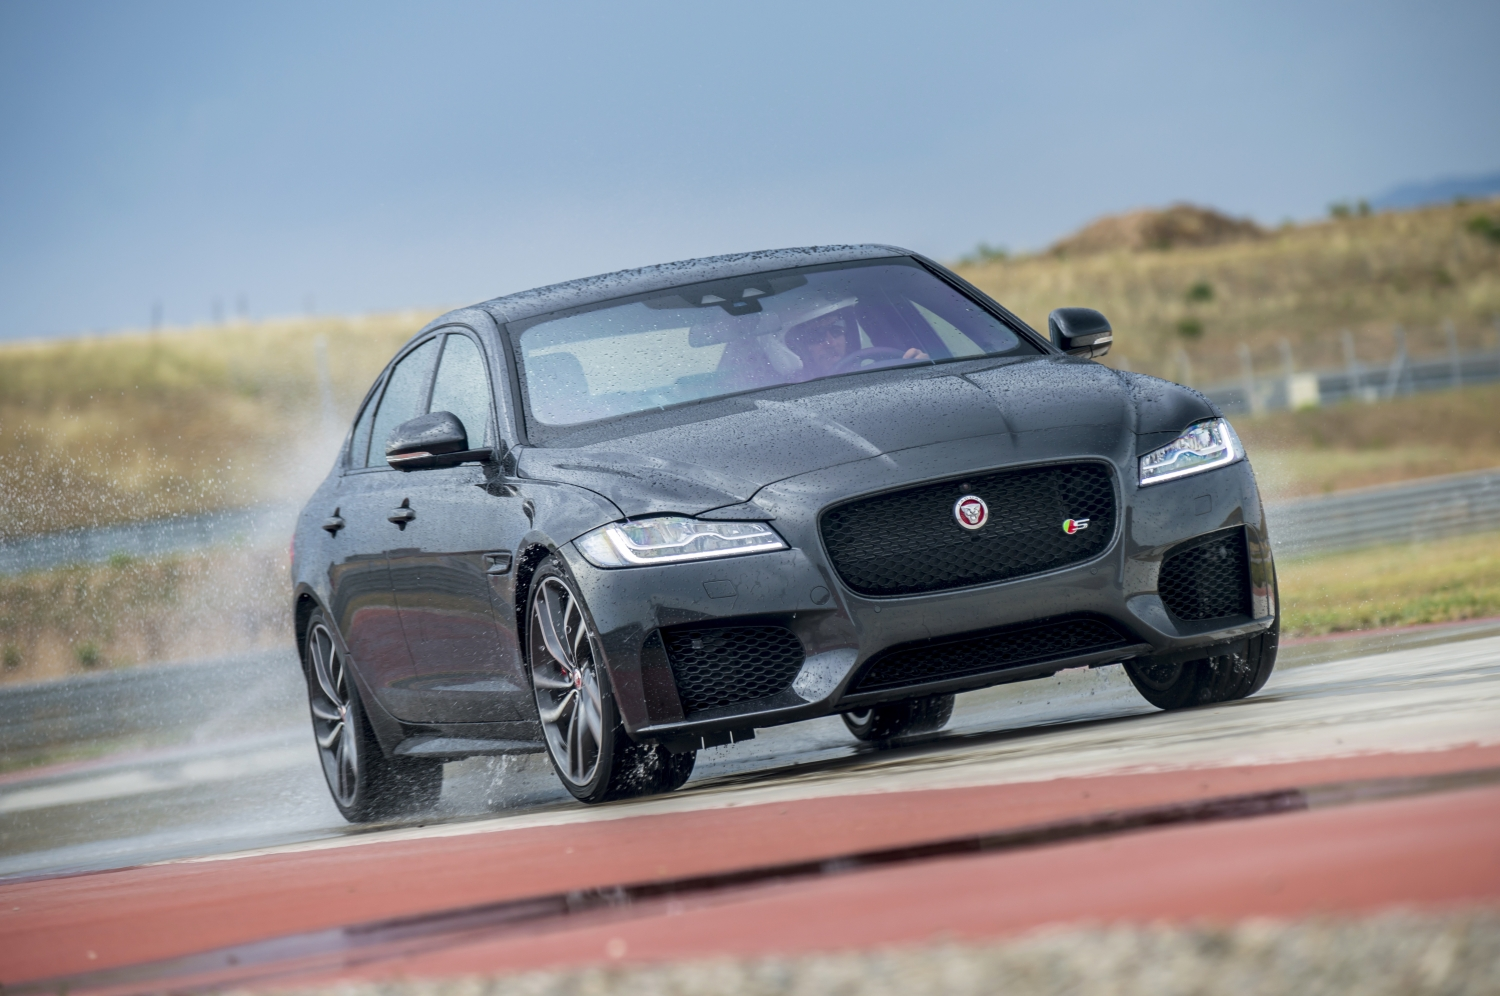 Jaguar XF global media drives in Navarra, Northern Spain